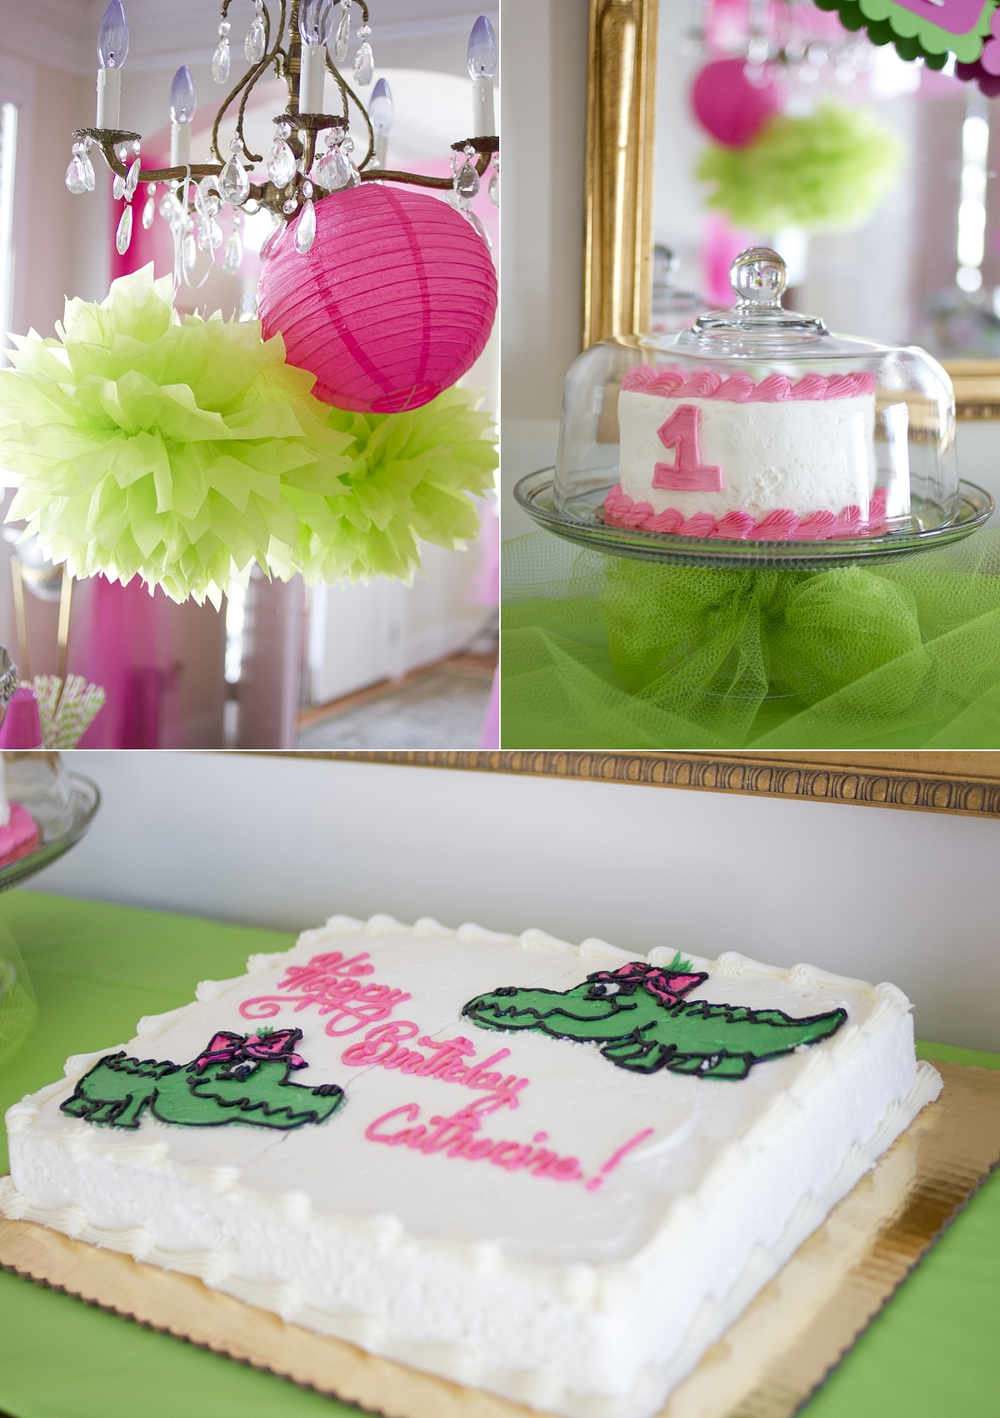 First-Birthday-Cake-Smash-004.jpg